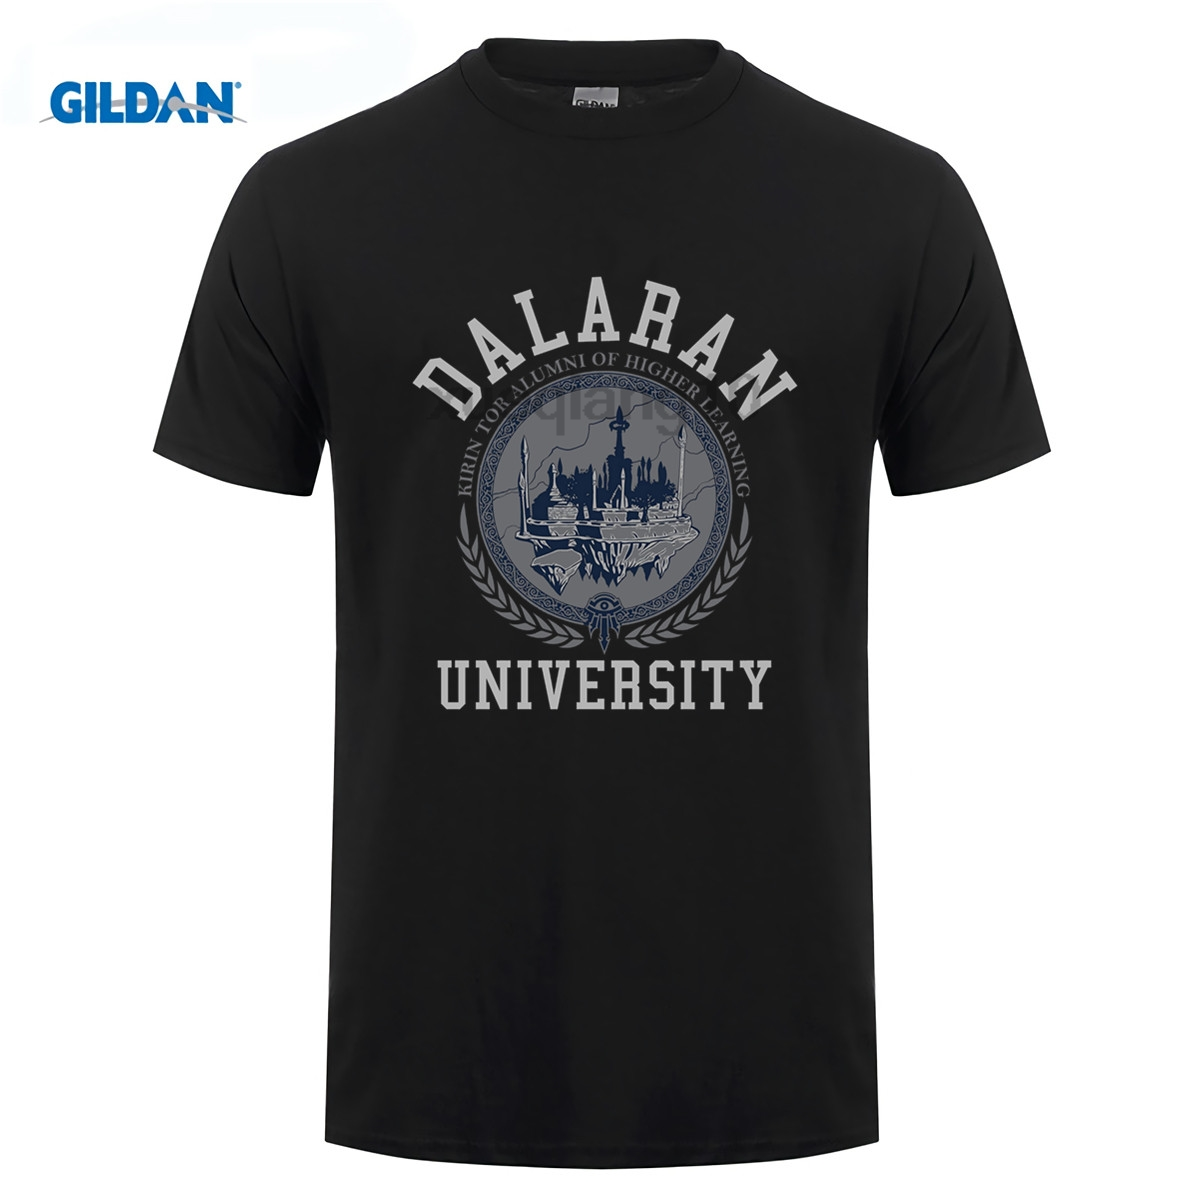 2019 Hot Sale Game T Shirt Brand T Shirt World Of Warcraft Men's Dalaran University Premium T-Shirt